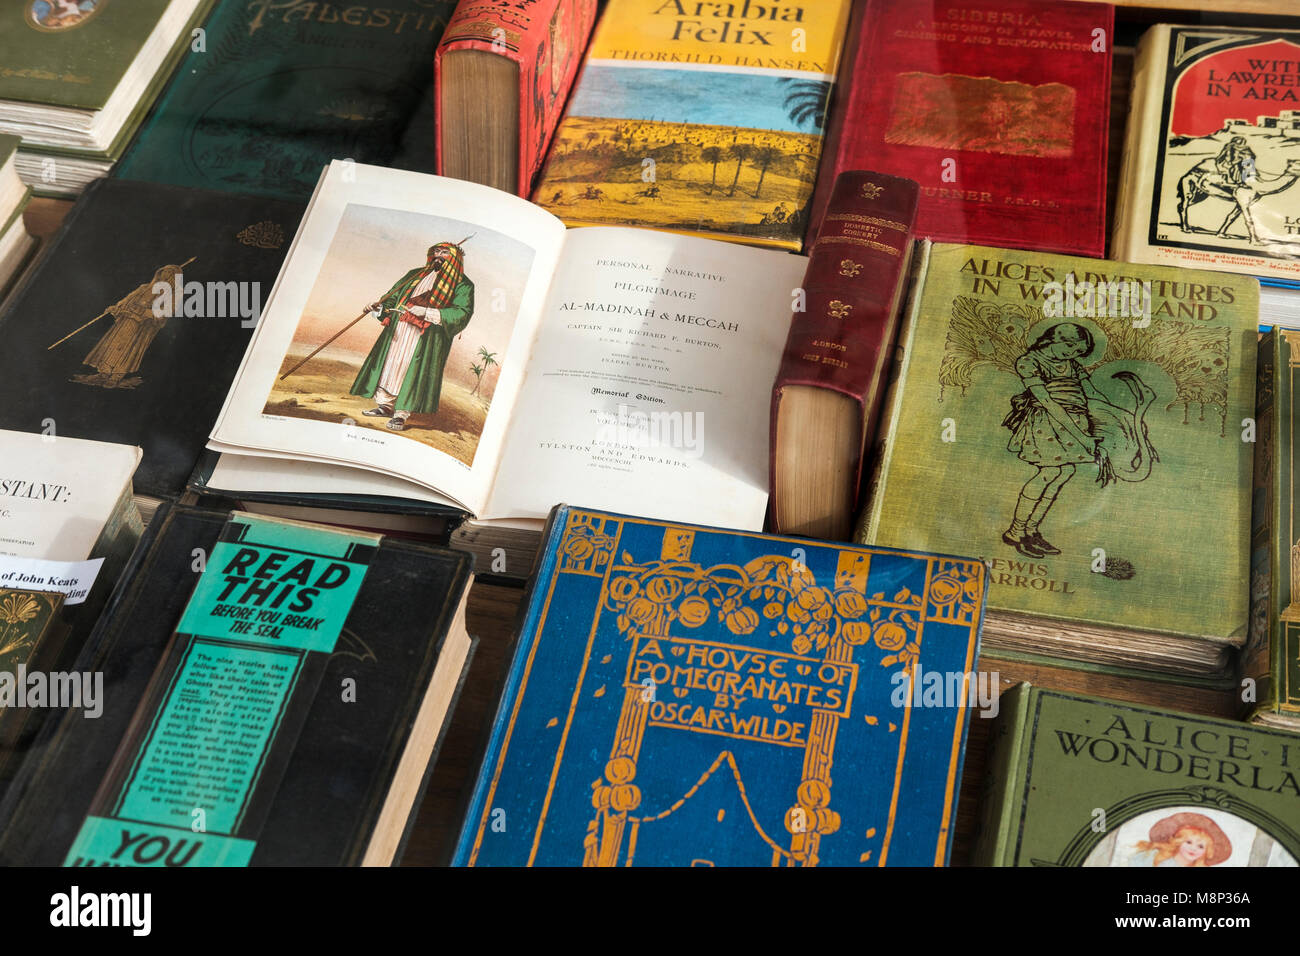 Antique books,London,UK - Stock Image